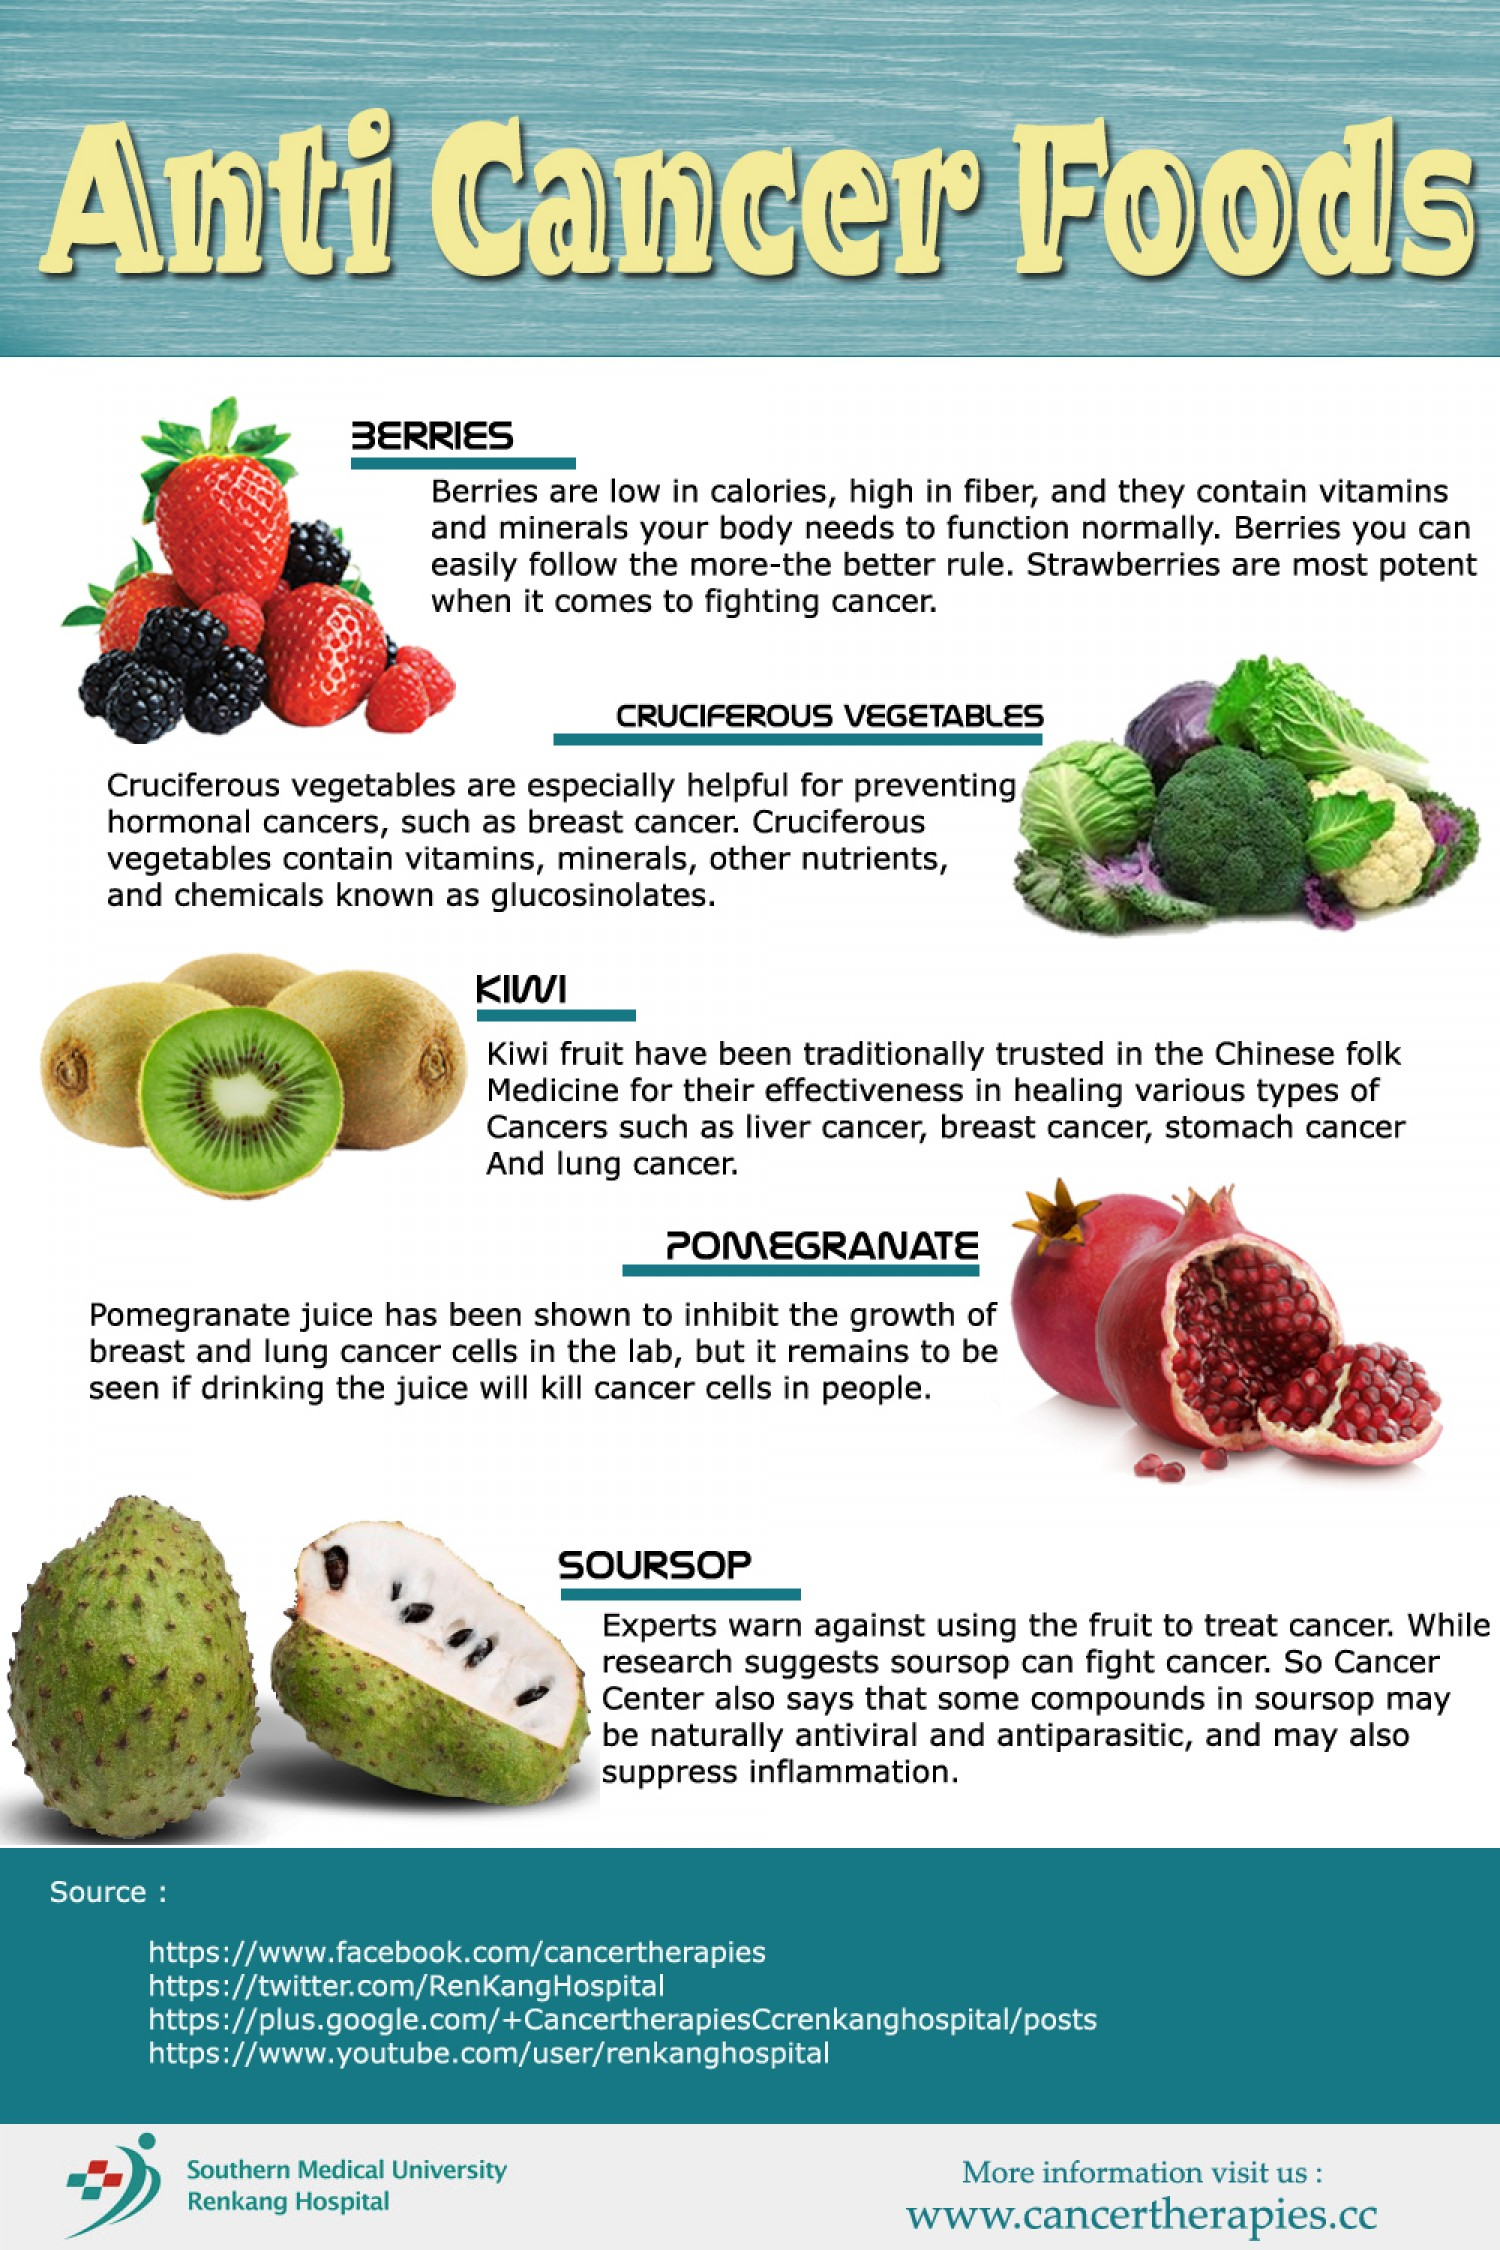 These 8 common foods are highly recommended and have anti-cancer ingredients!